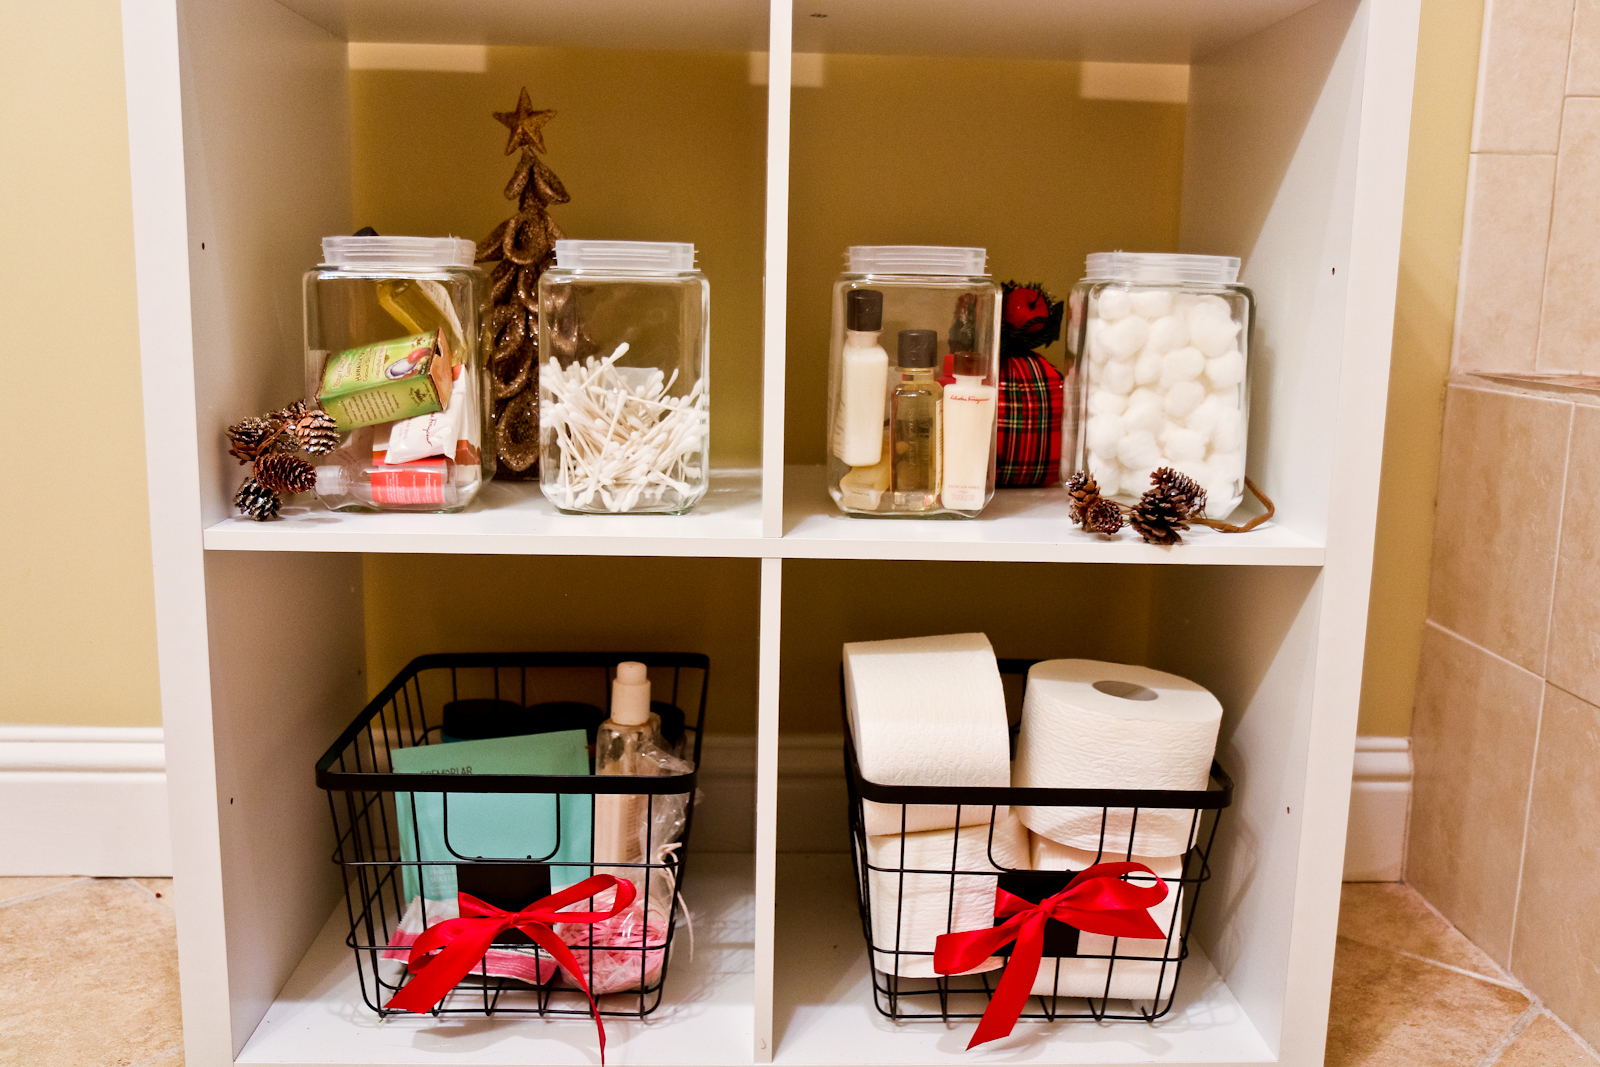 Bathroom storage for holidays